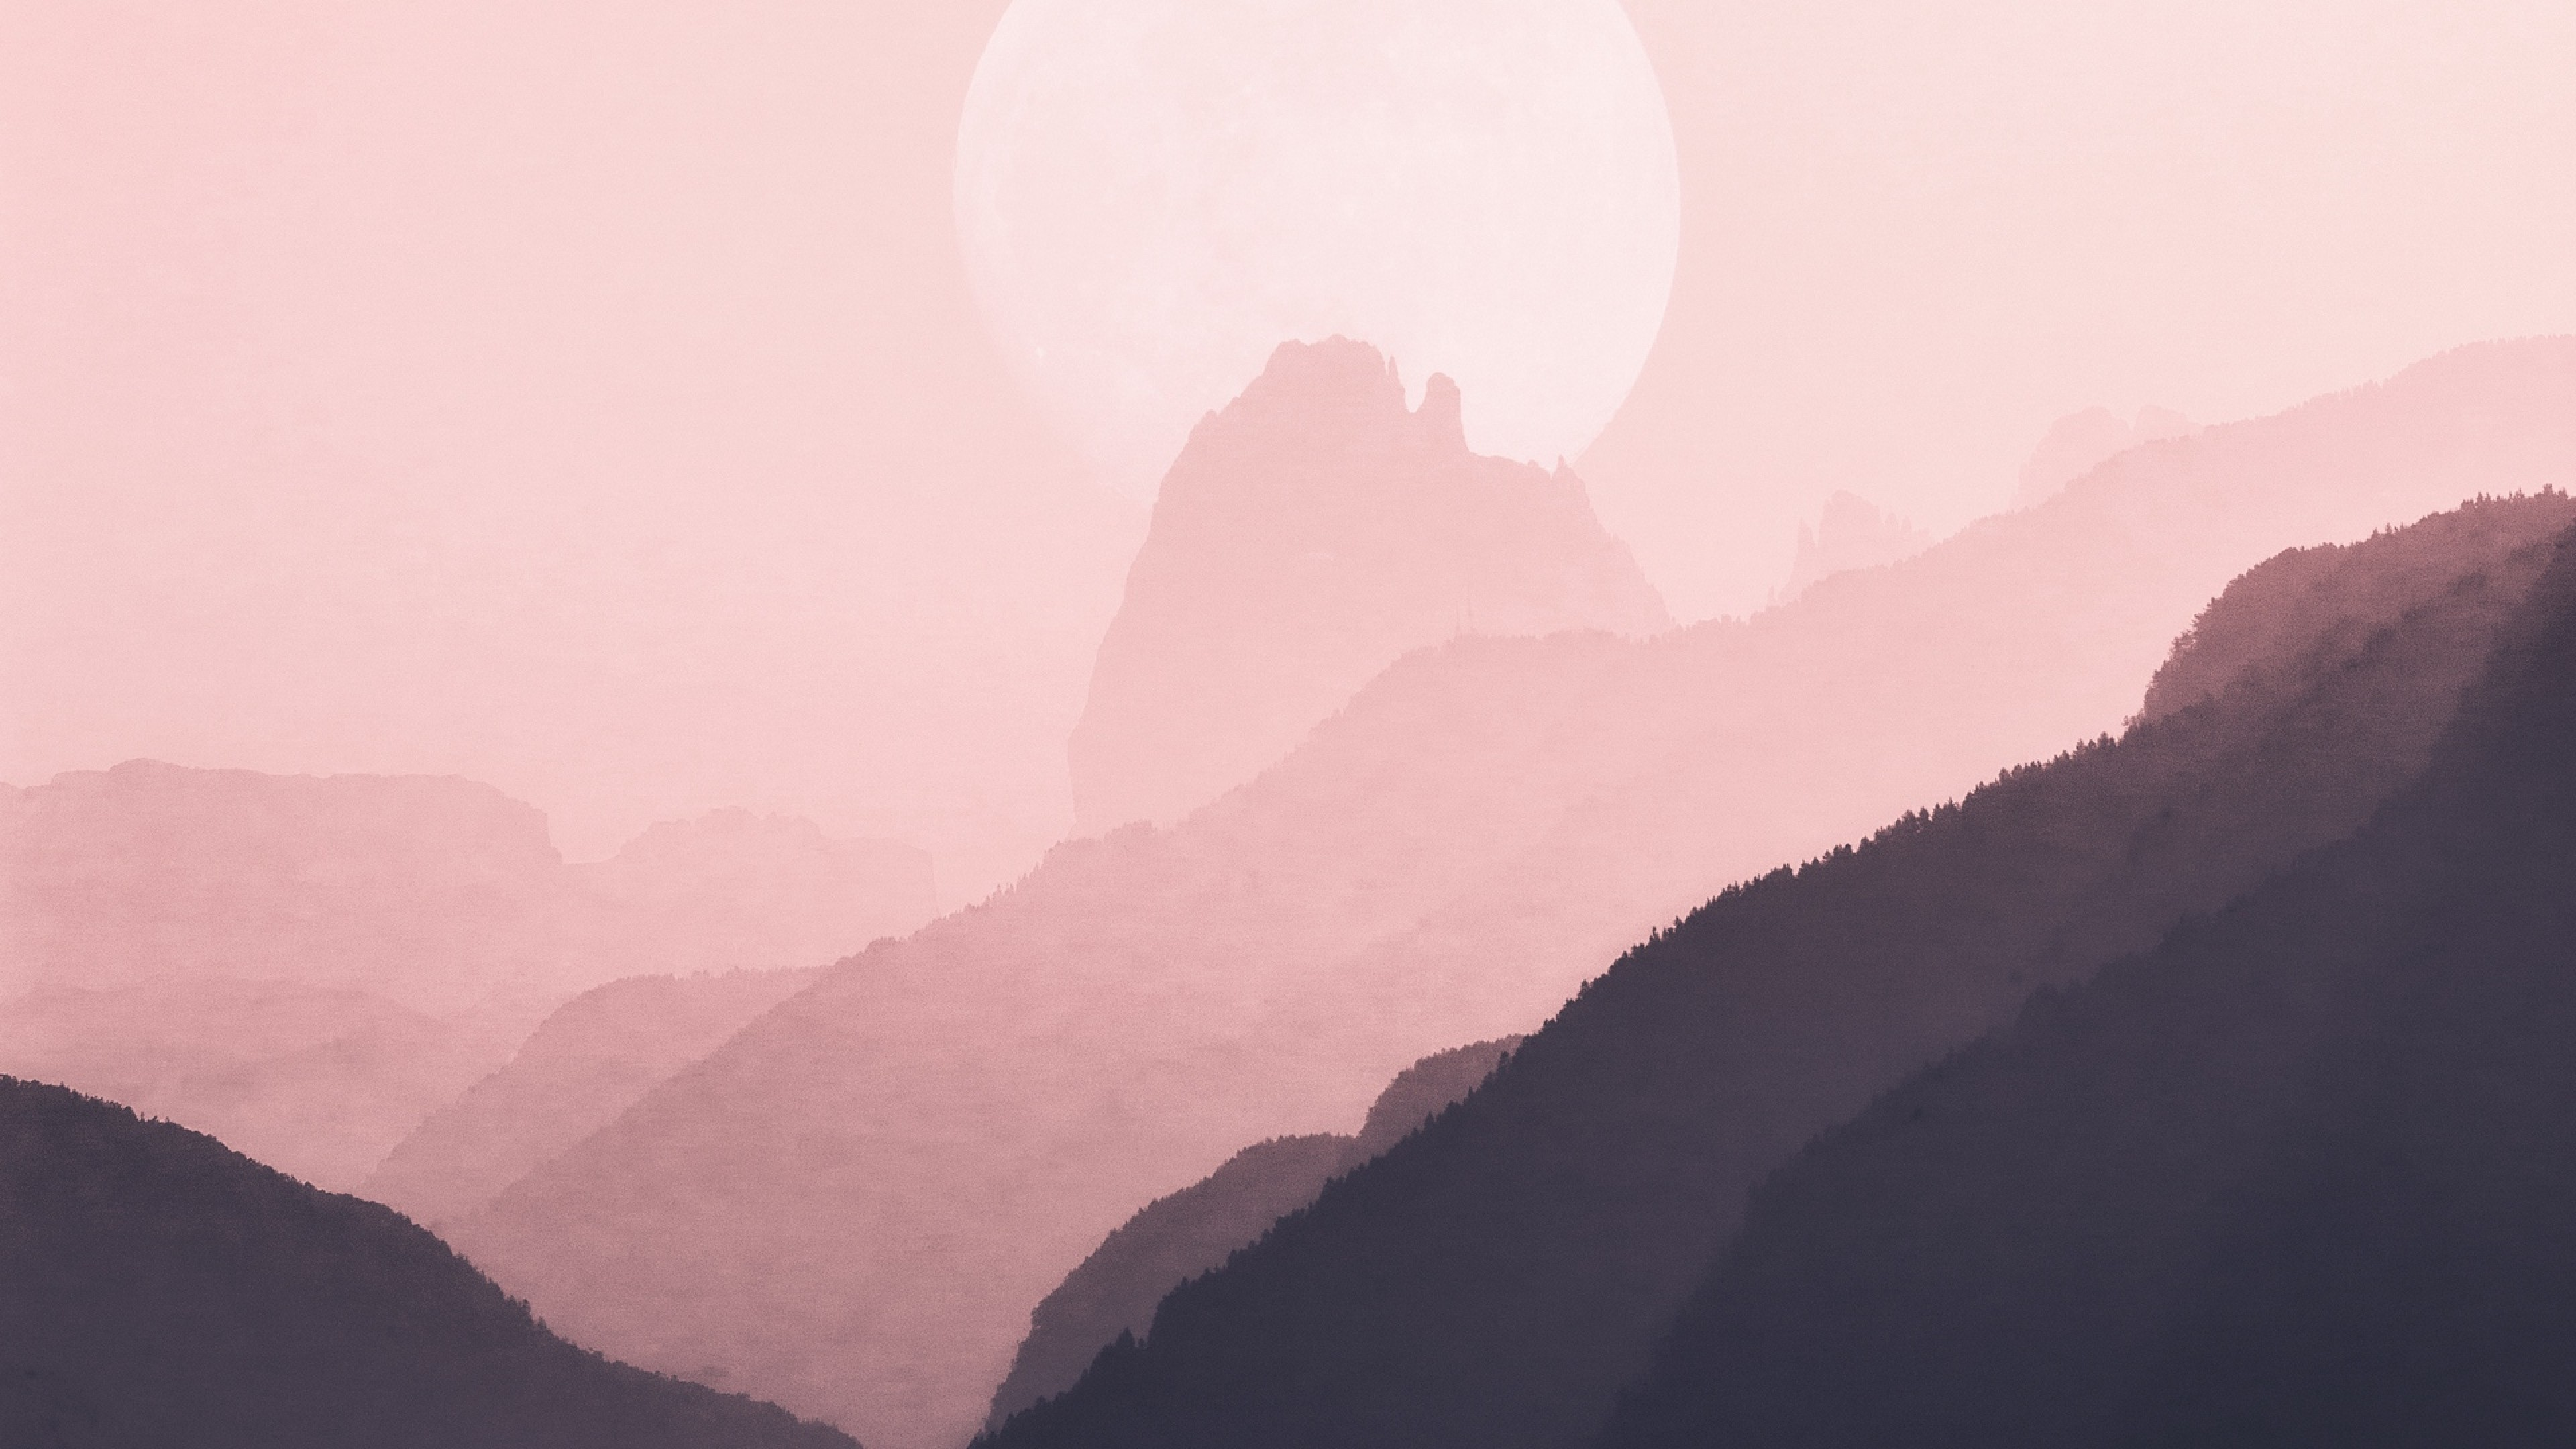 We hope you enjoy our growing collection of hd images to use as a background or home screen for your smartphone or computer. Pink sky over the mountains HD Wallpaper 4K Ultra HD - HD ...